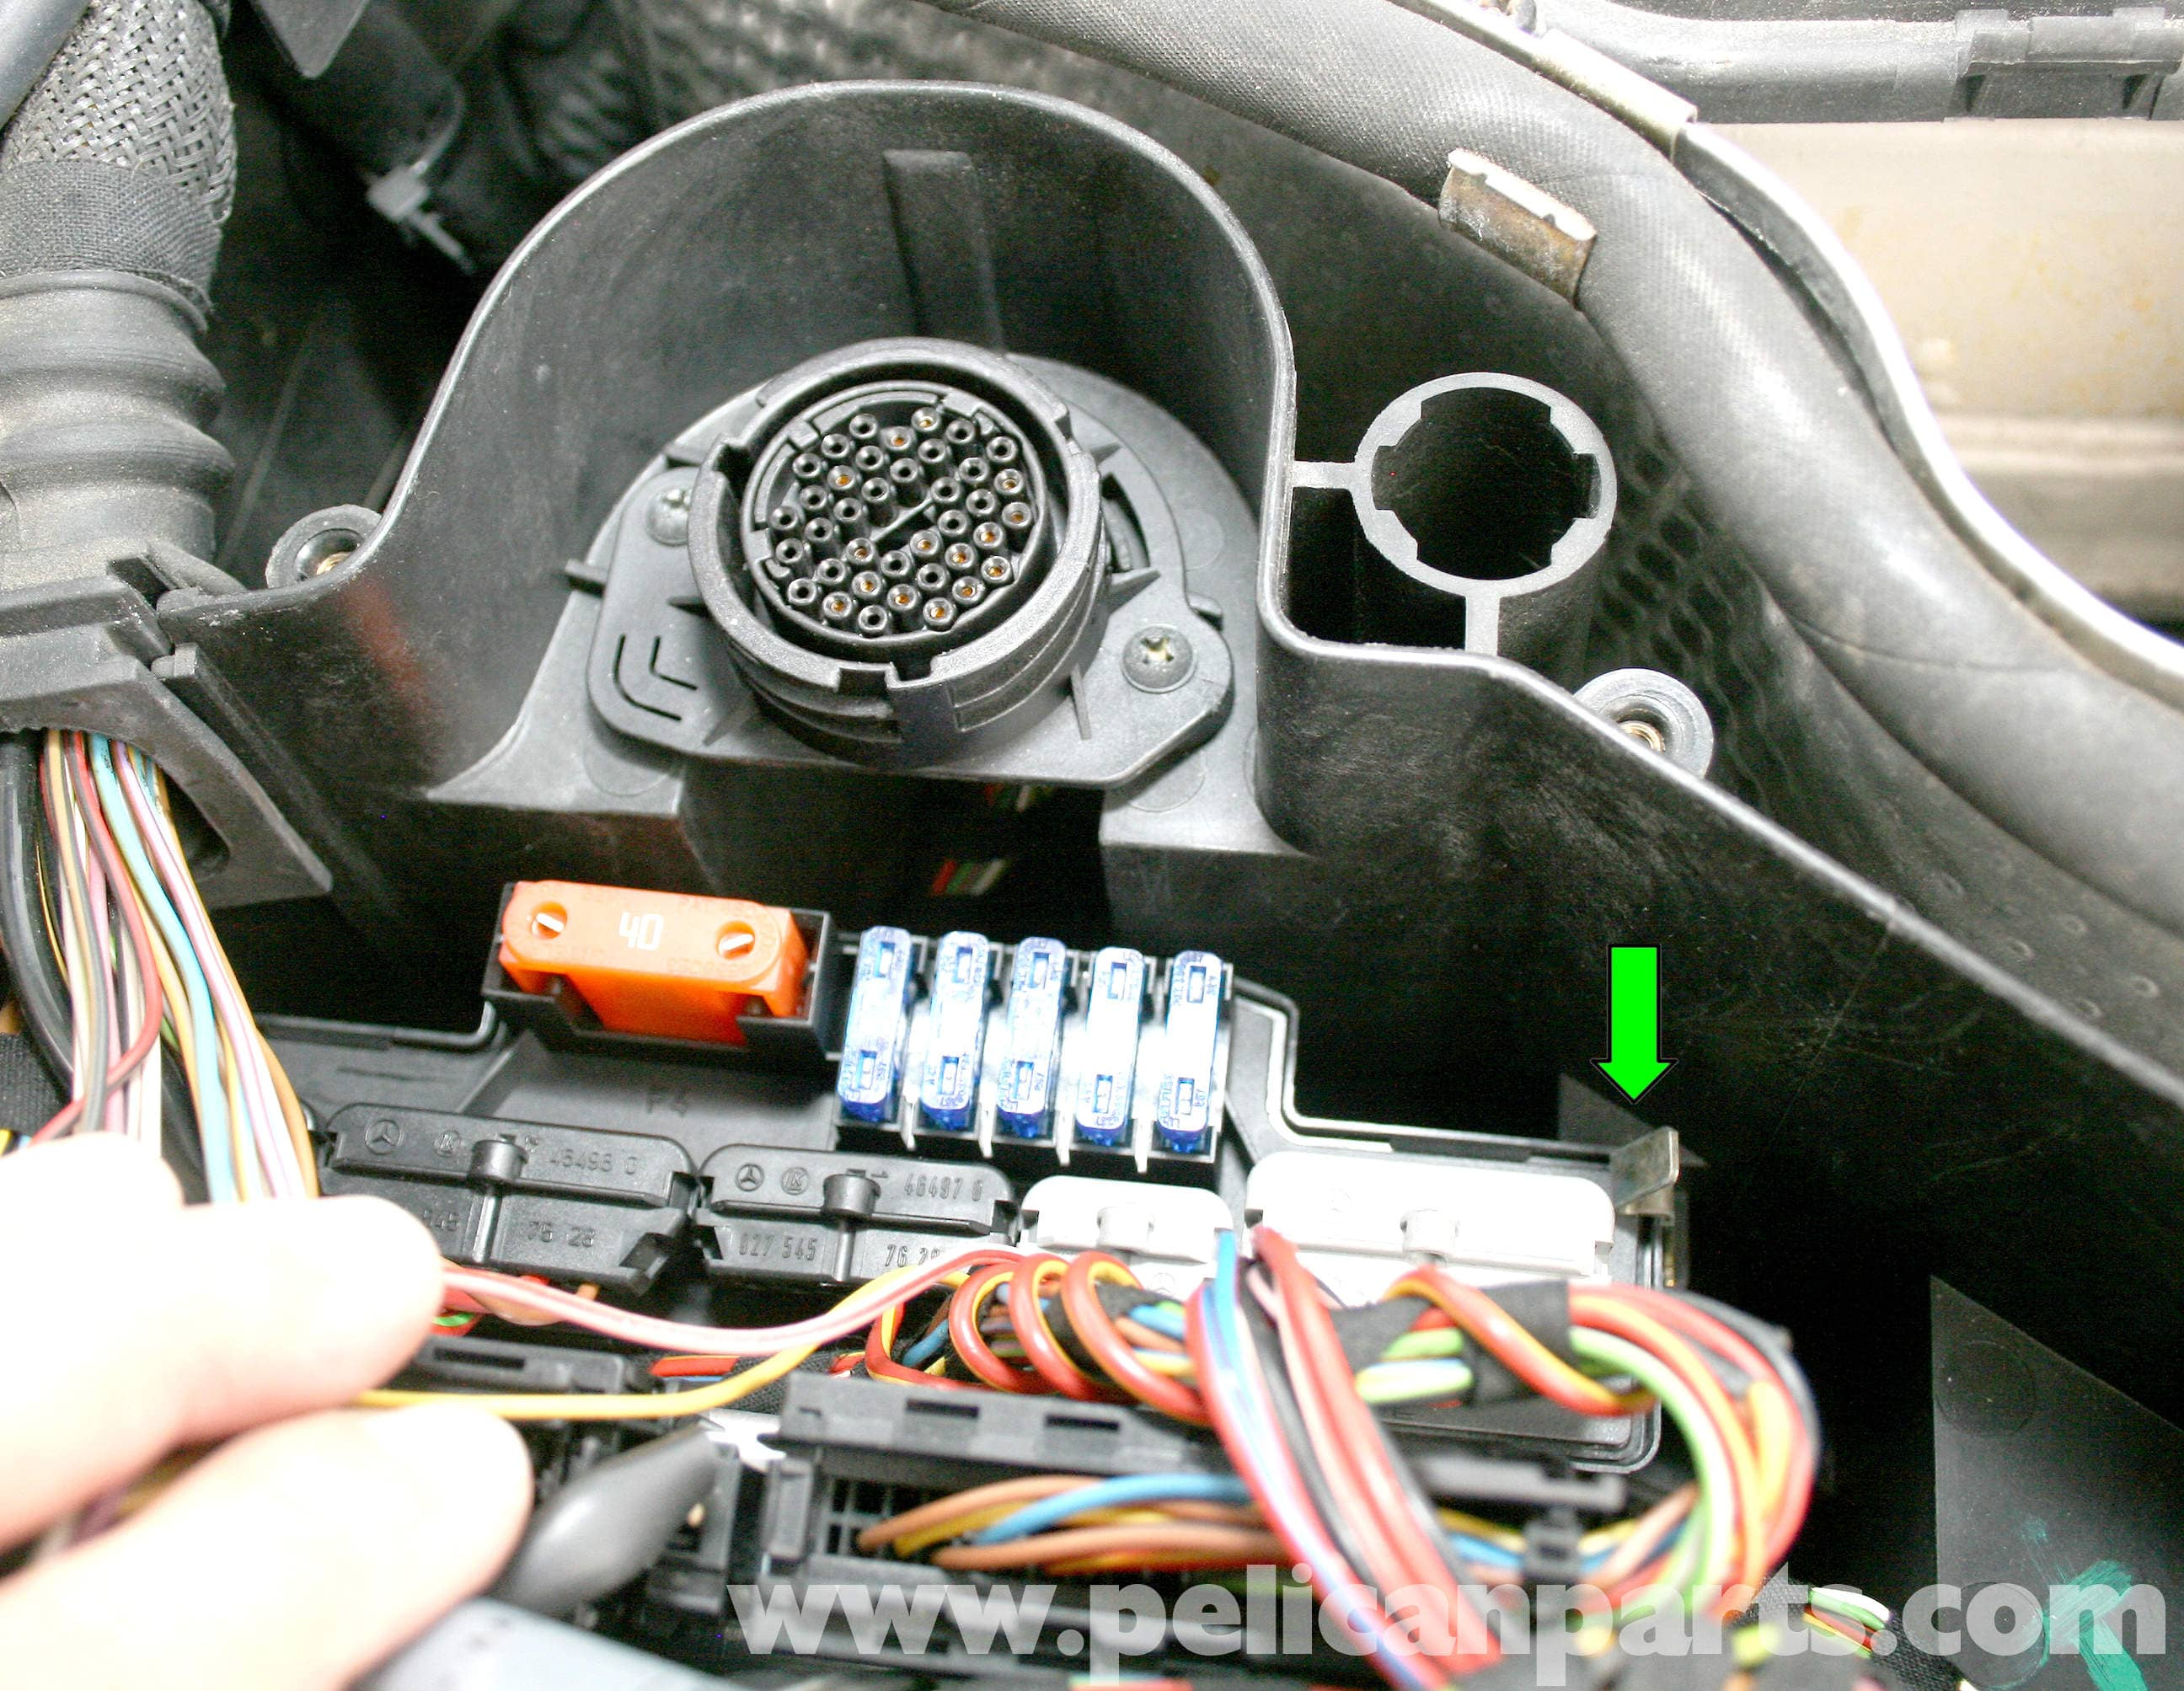 Mercedes Benz SLK 230 K40 Overload Protection Relay Repair